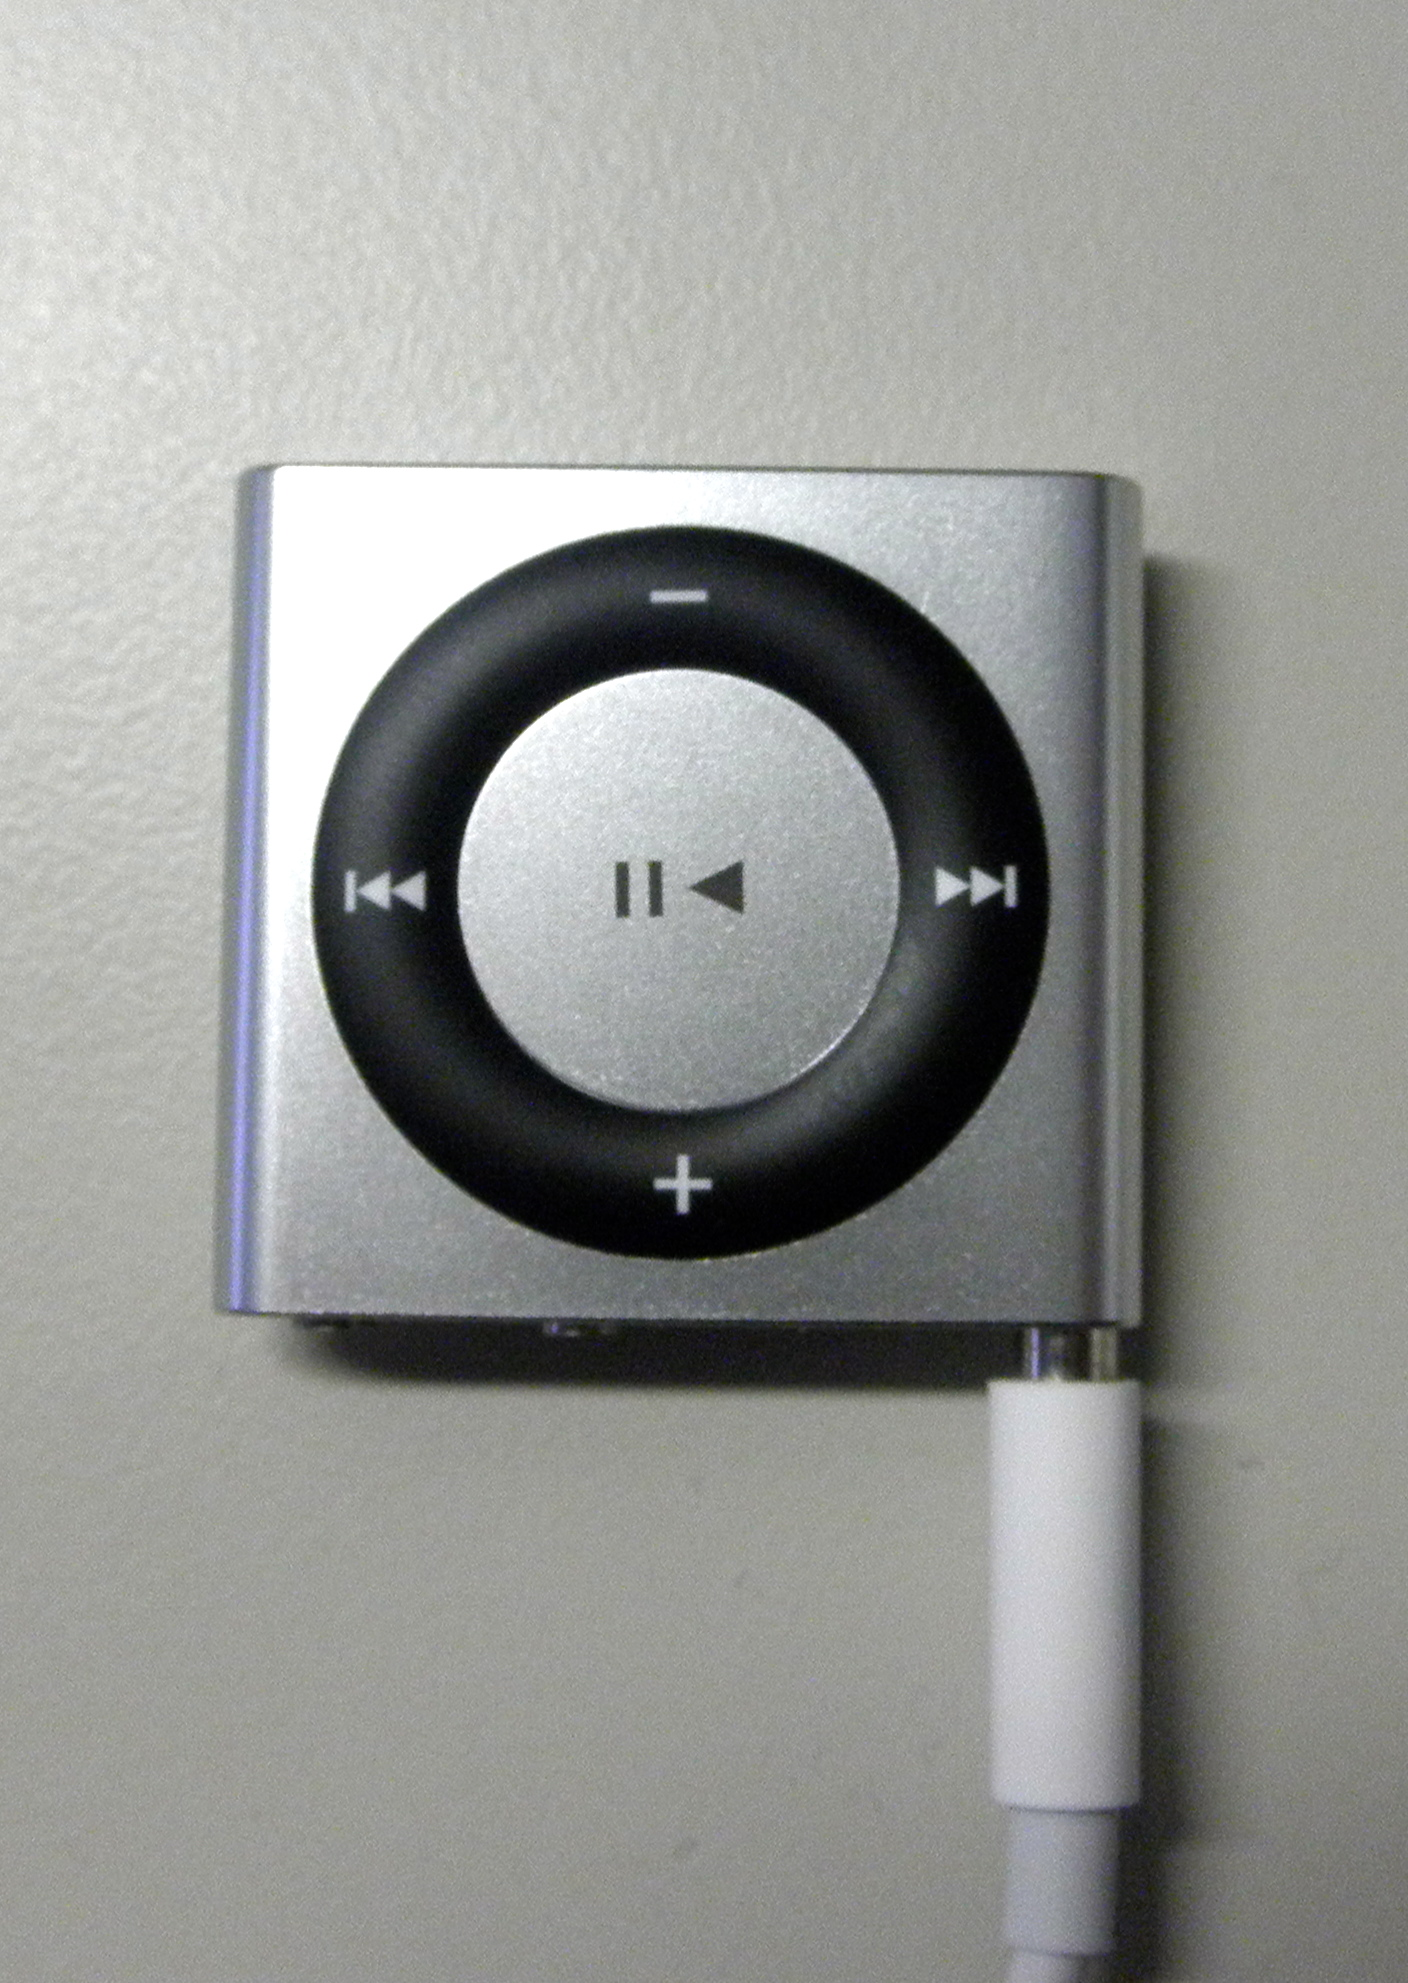 iPod shuffle with loose cable